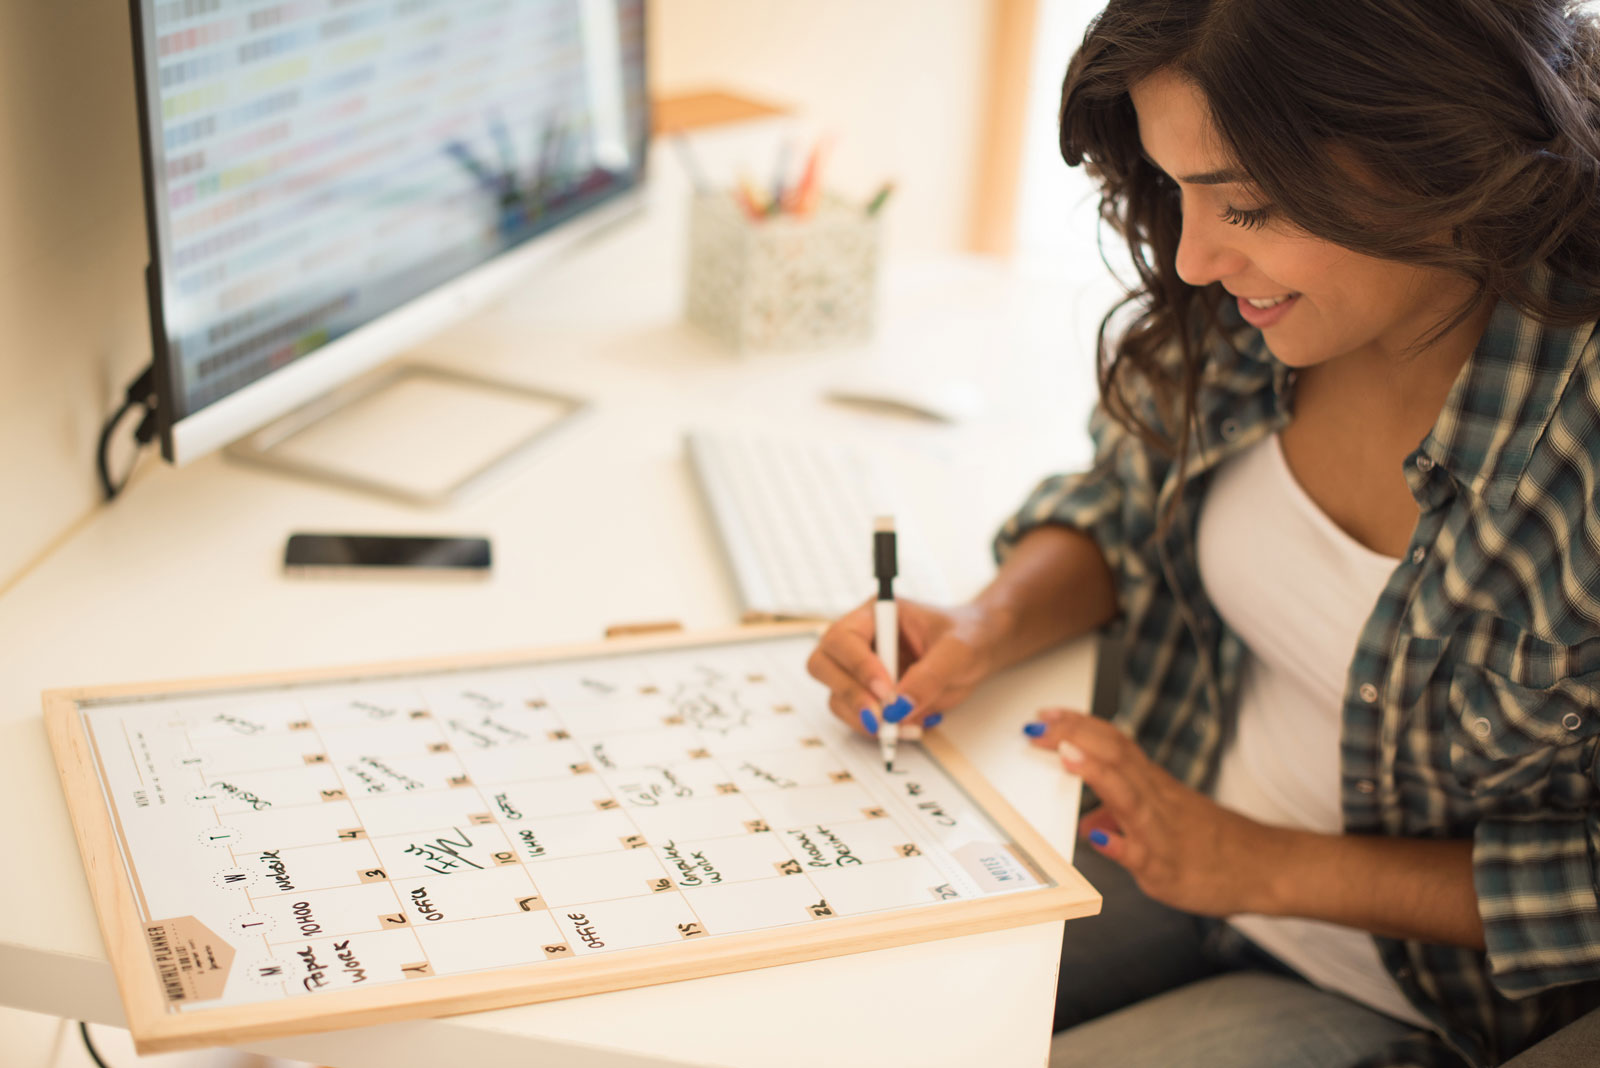 Woman Writing On A Calendar | Social Media Content: 5 Types That Get Massive Engagement